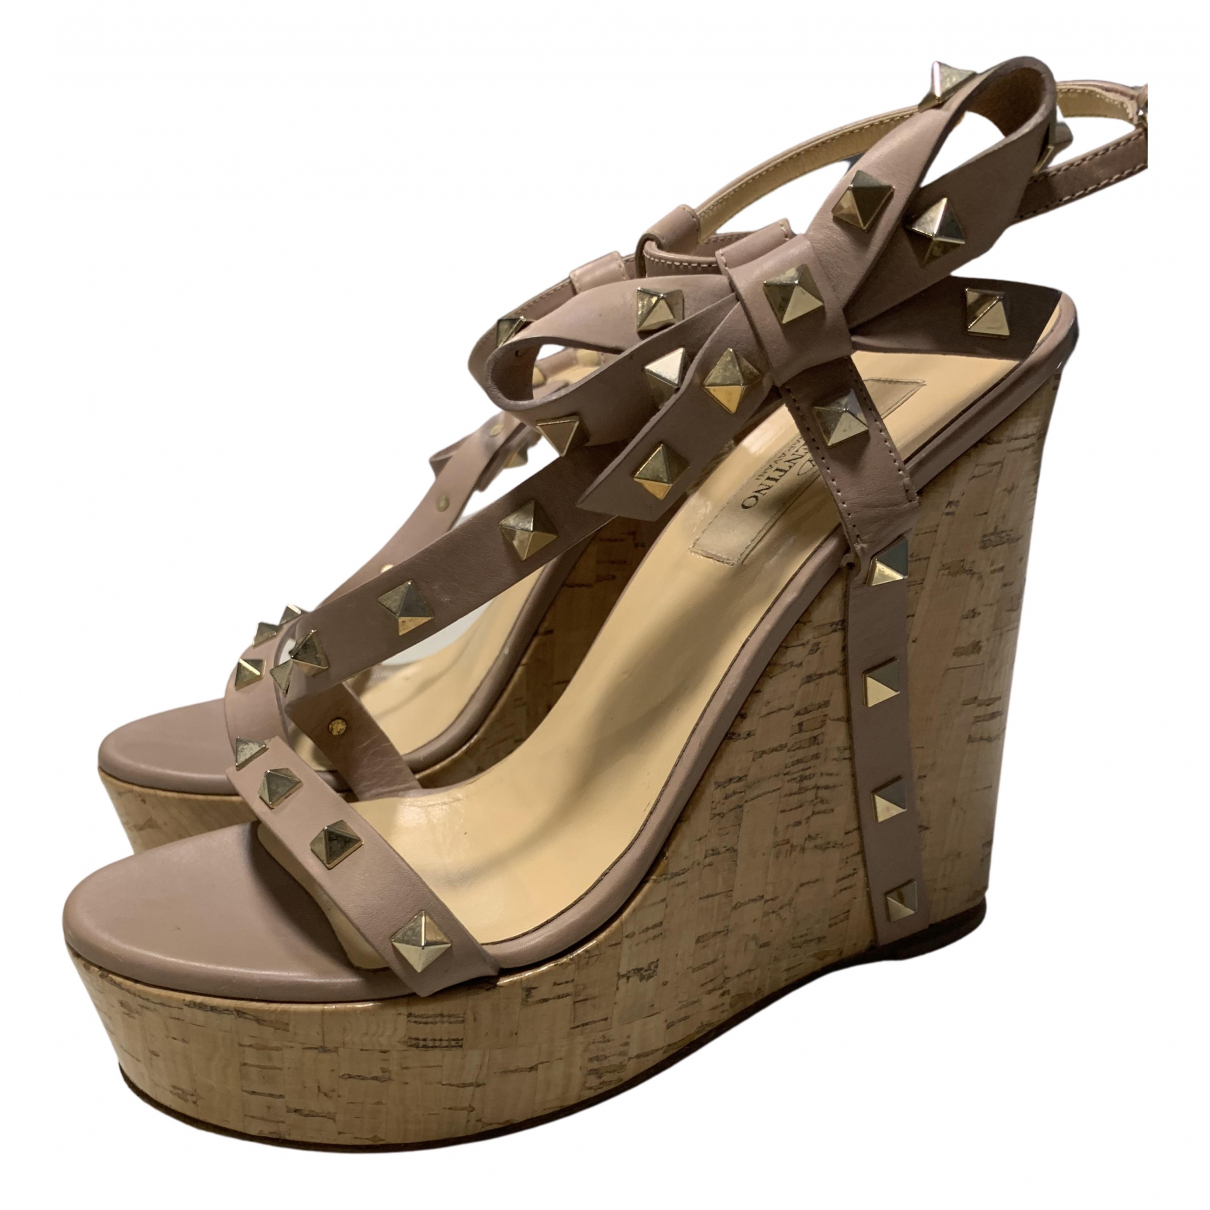 Valentino Garavani Rockstud Beige Leather Sandals for Women 38 EU